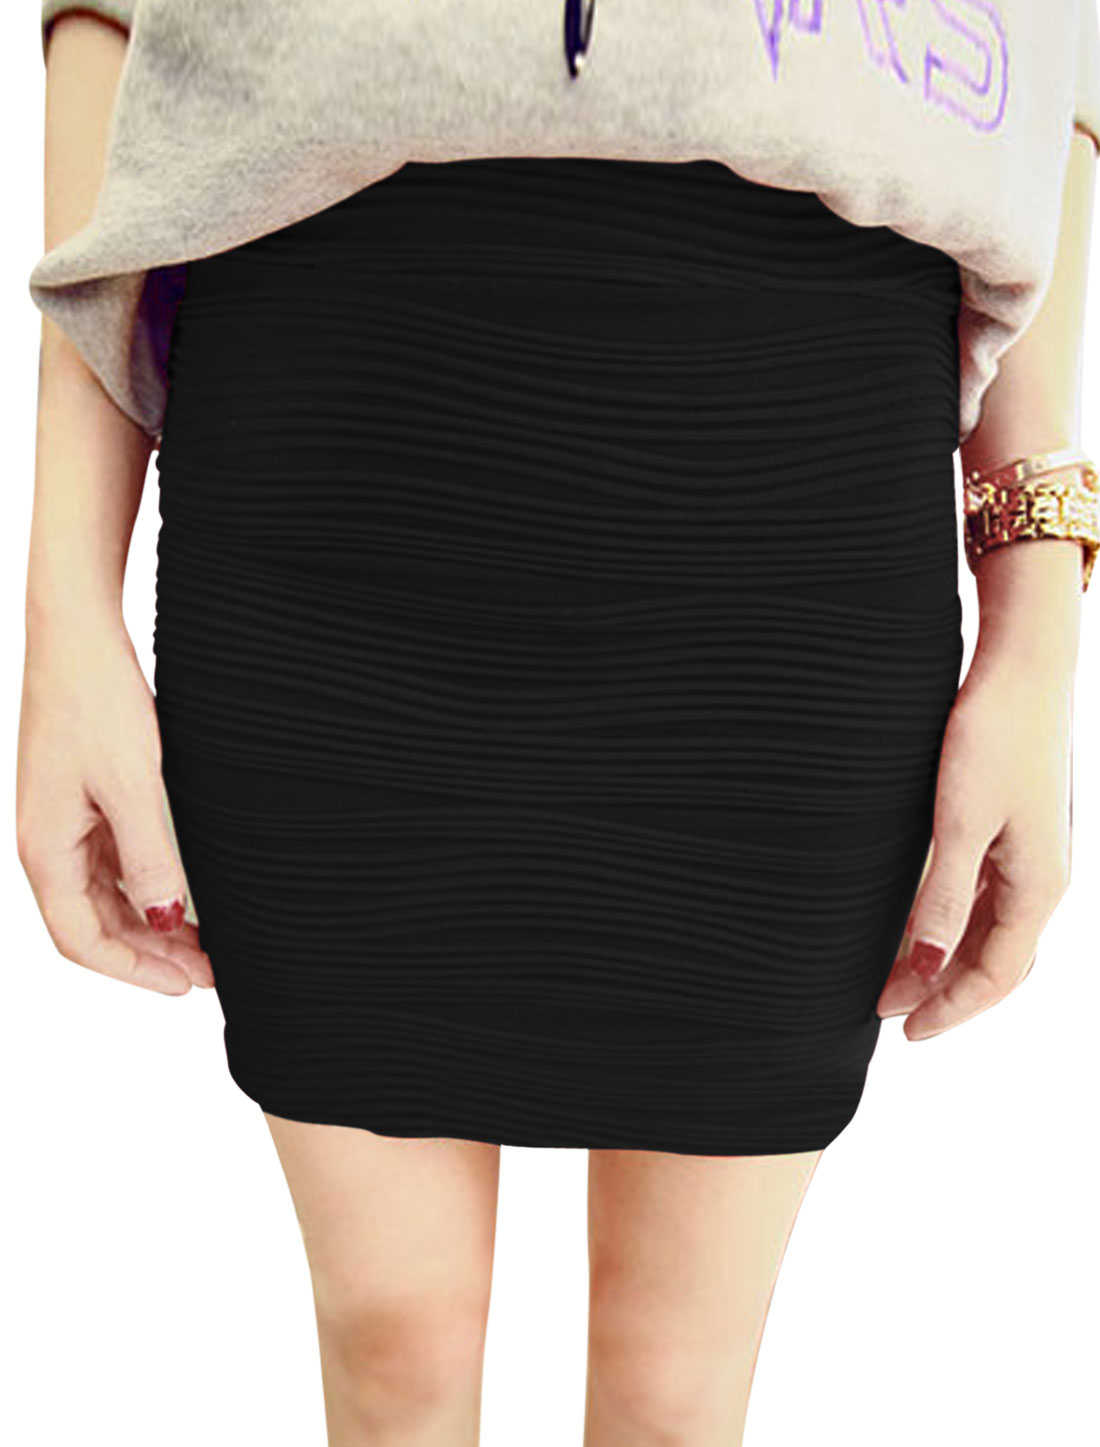 Textured Design Mid Rise Fashion Mini Skirt for Lady Black XS